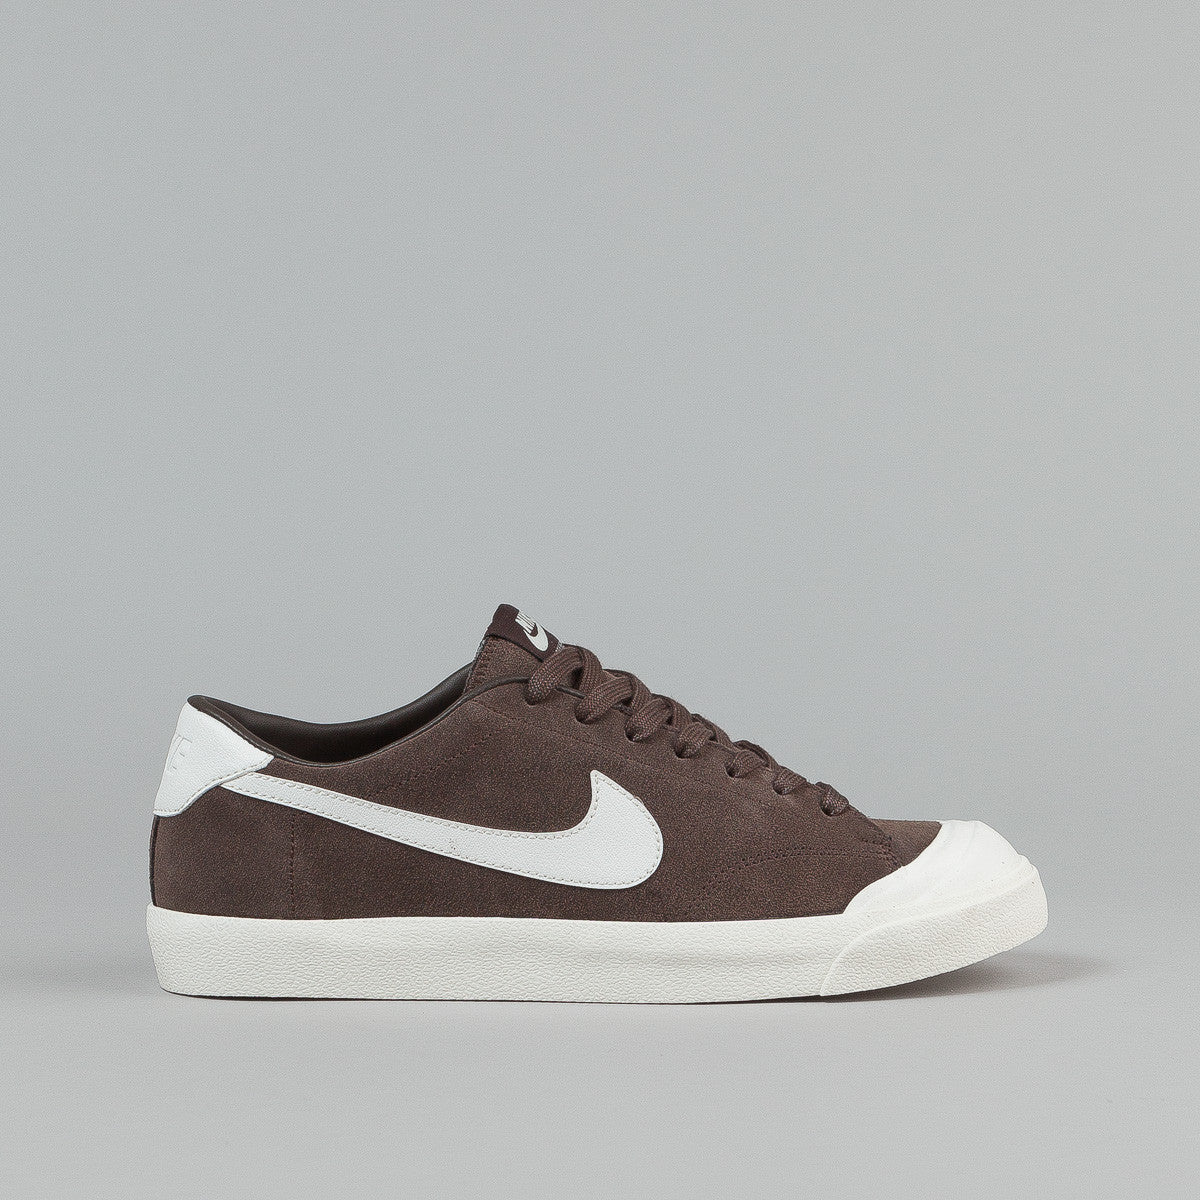 Nike SB All Court CK Shoes